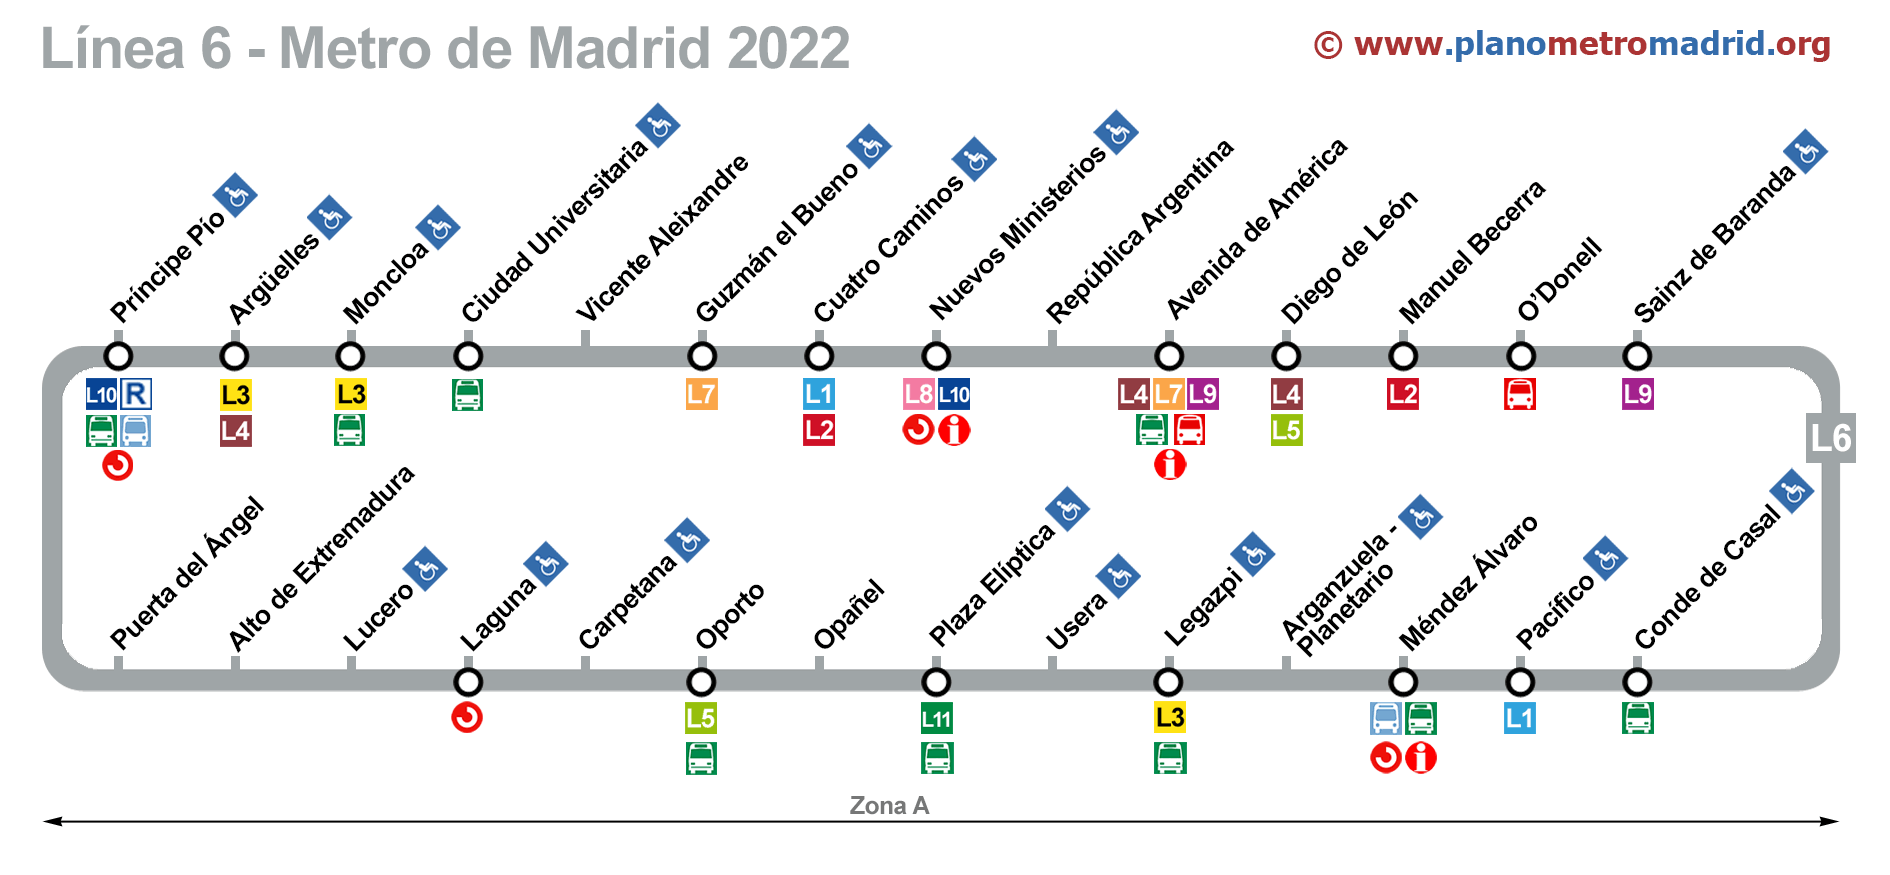 madrid metro and line Madrid metro map online map showing the lines and metro stops for the madrid metro (subway, underground, tube system) in spain includes link to free printer friendly version of the map for your trip.